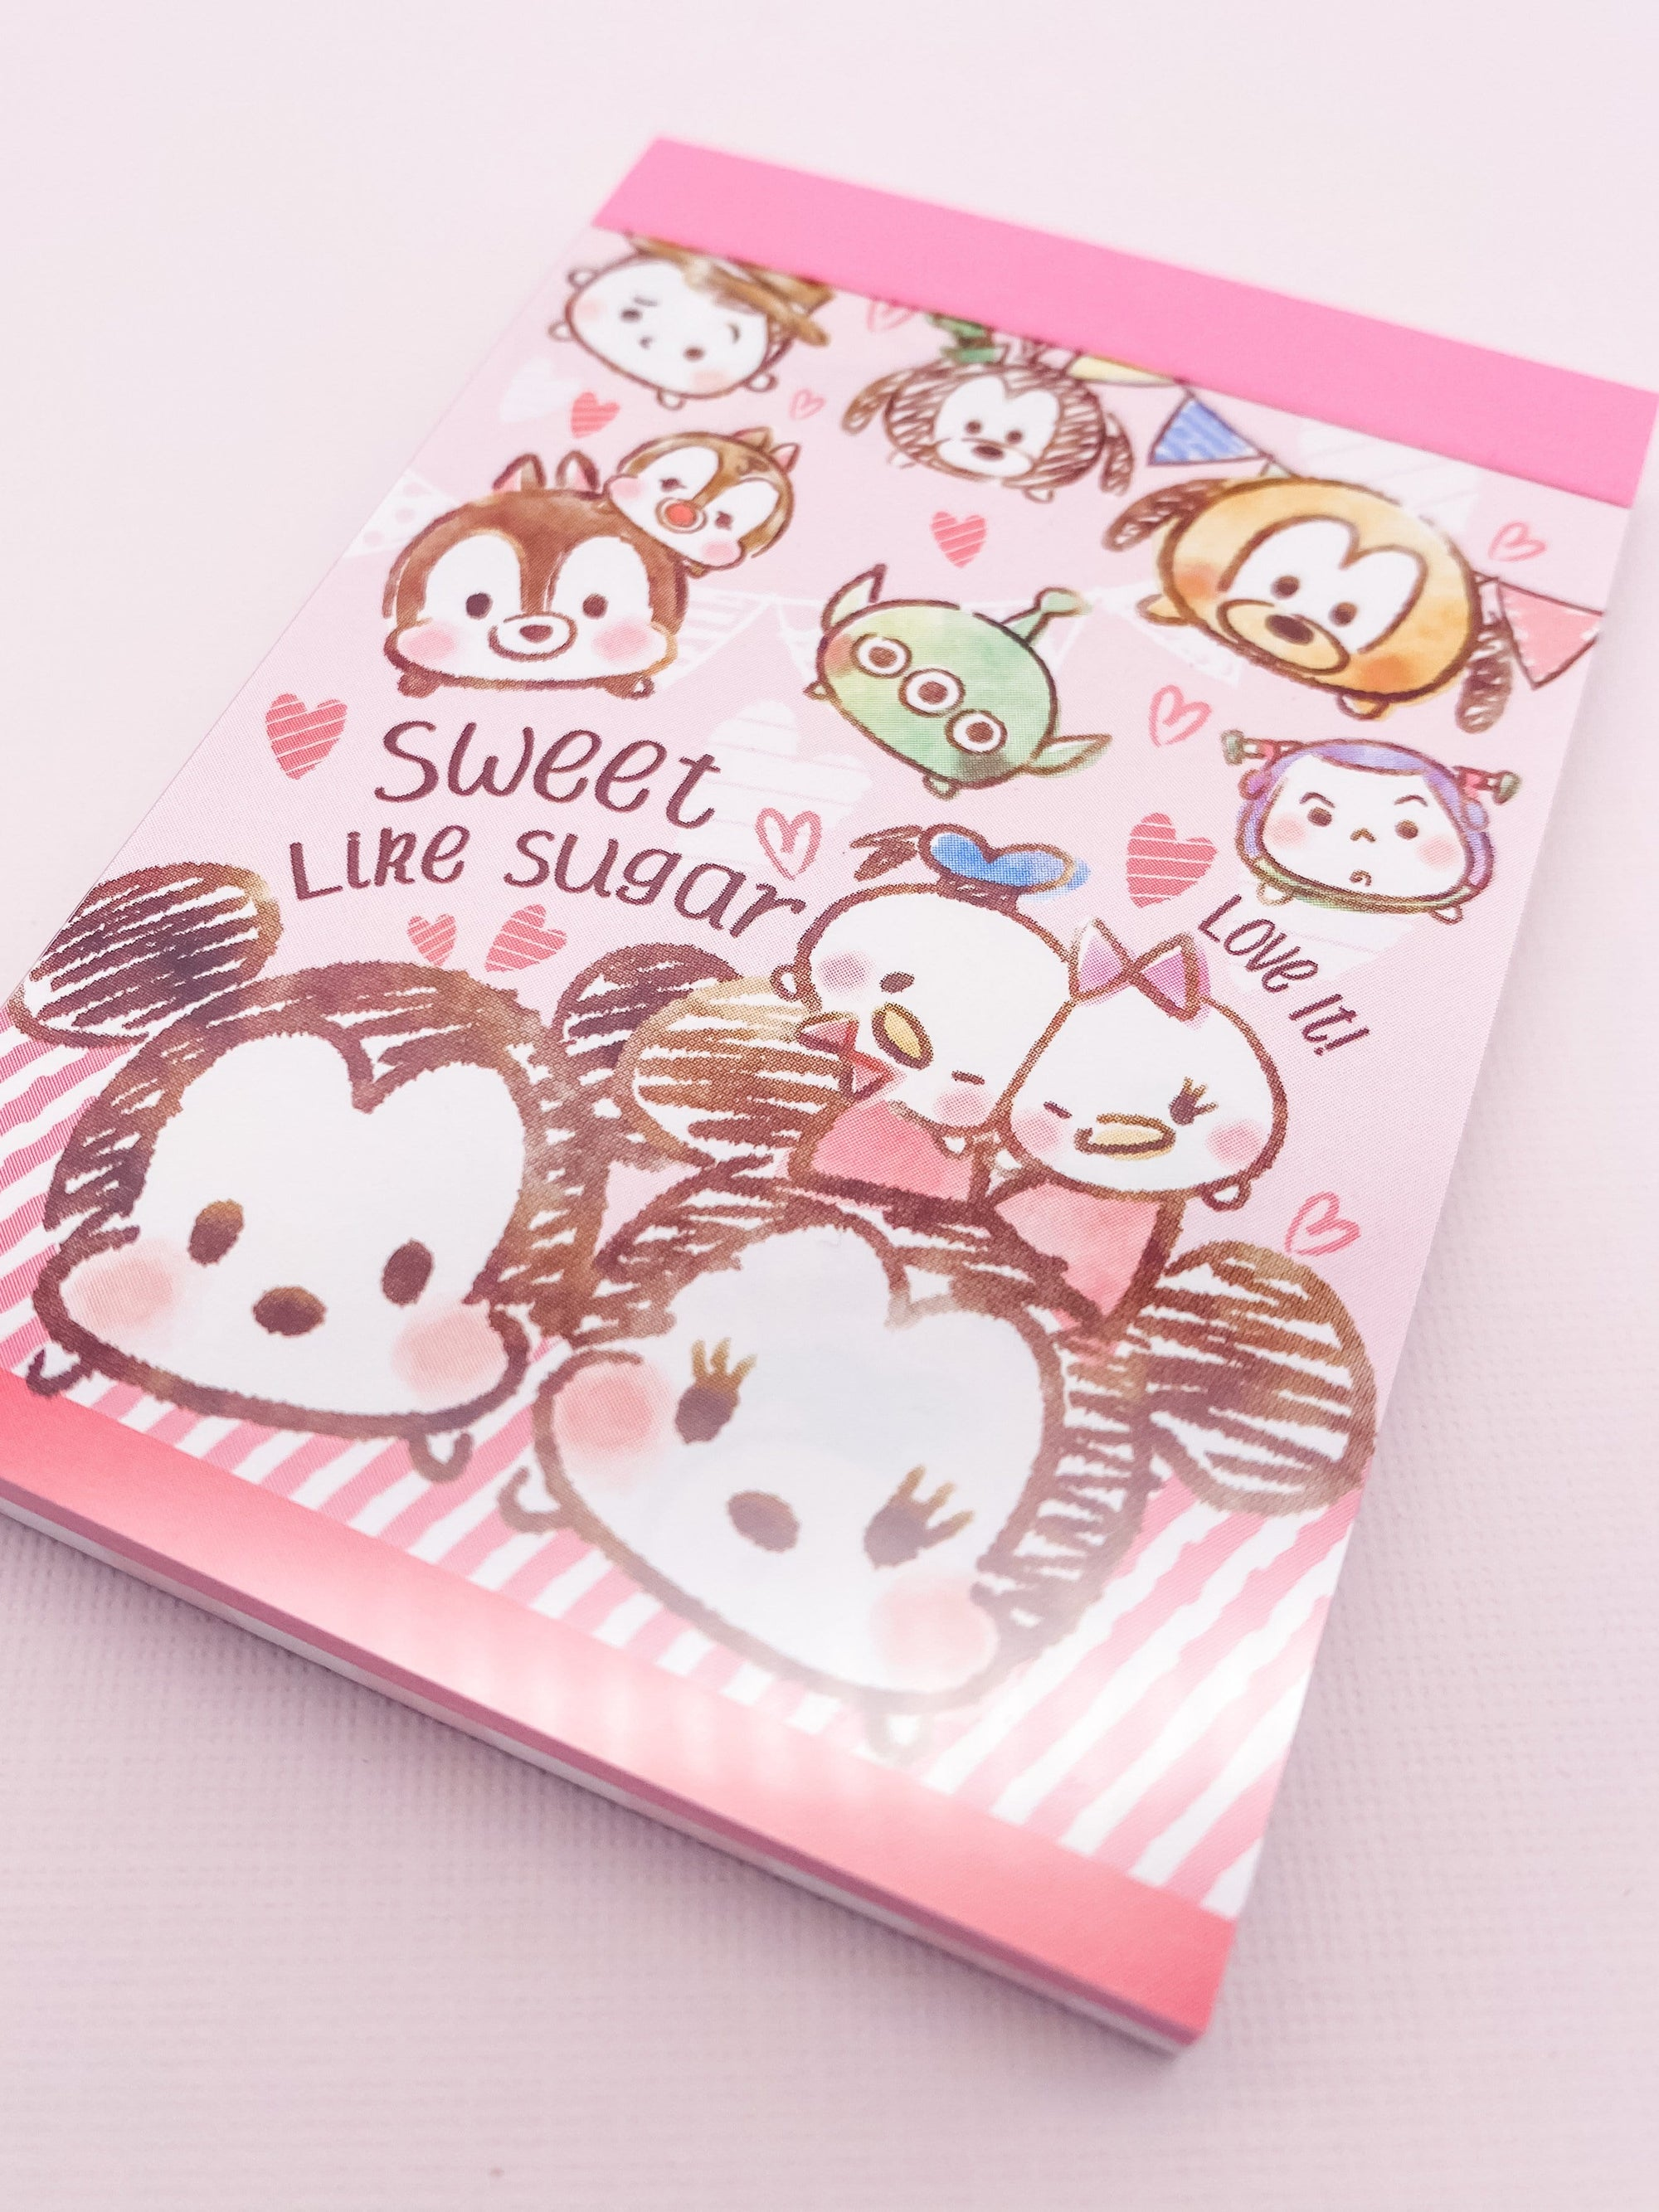 "Mini memo pad with Disney Tsum Tsum characters sketched on it. Says ""Sweet like sugar. Love it!"""